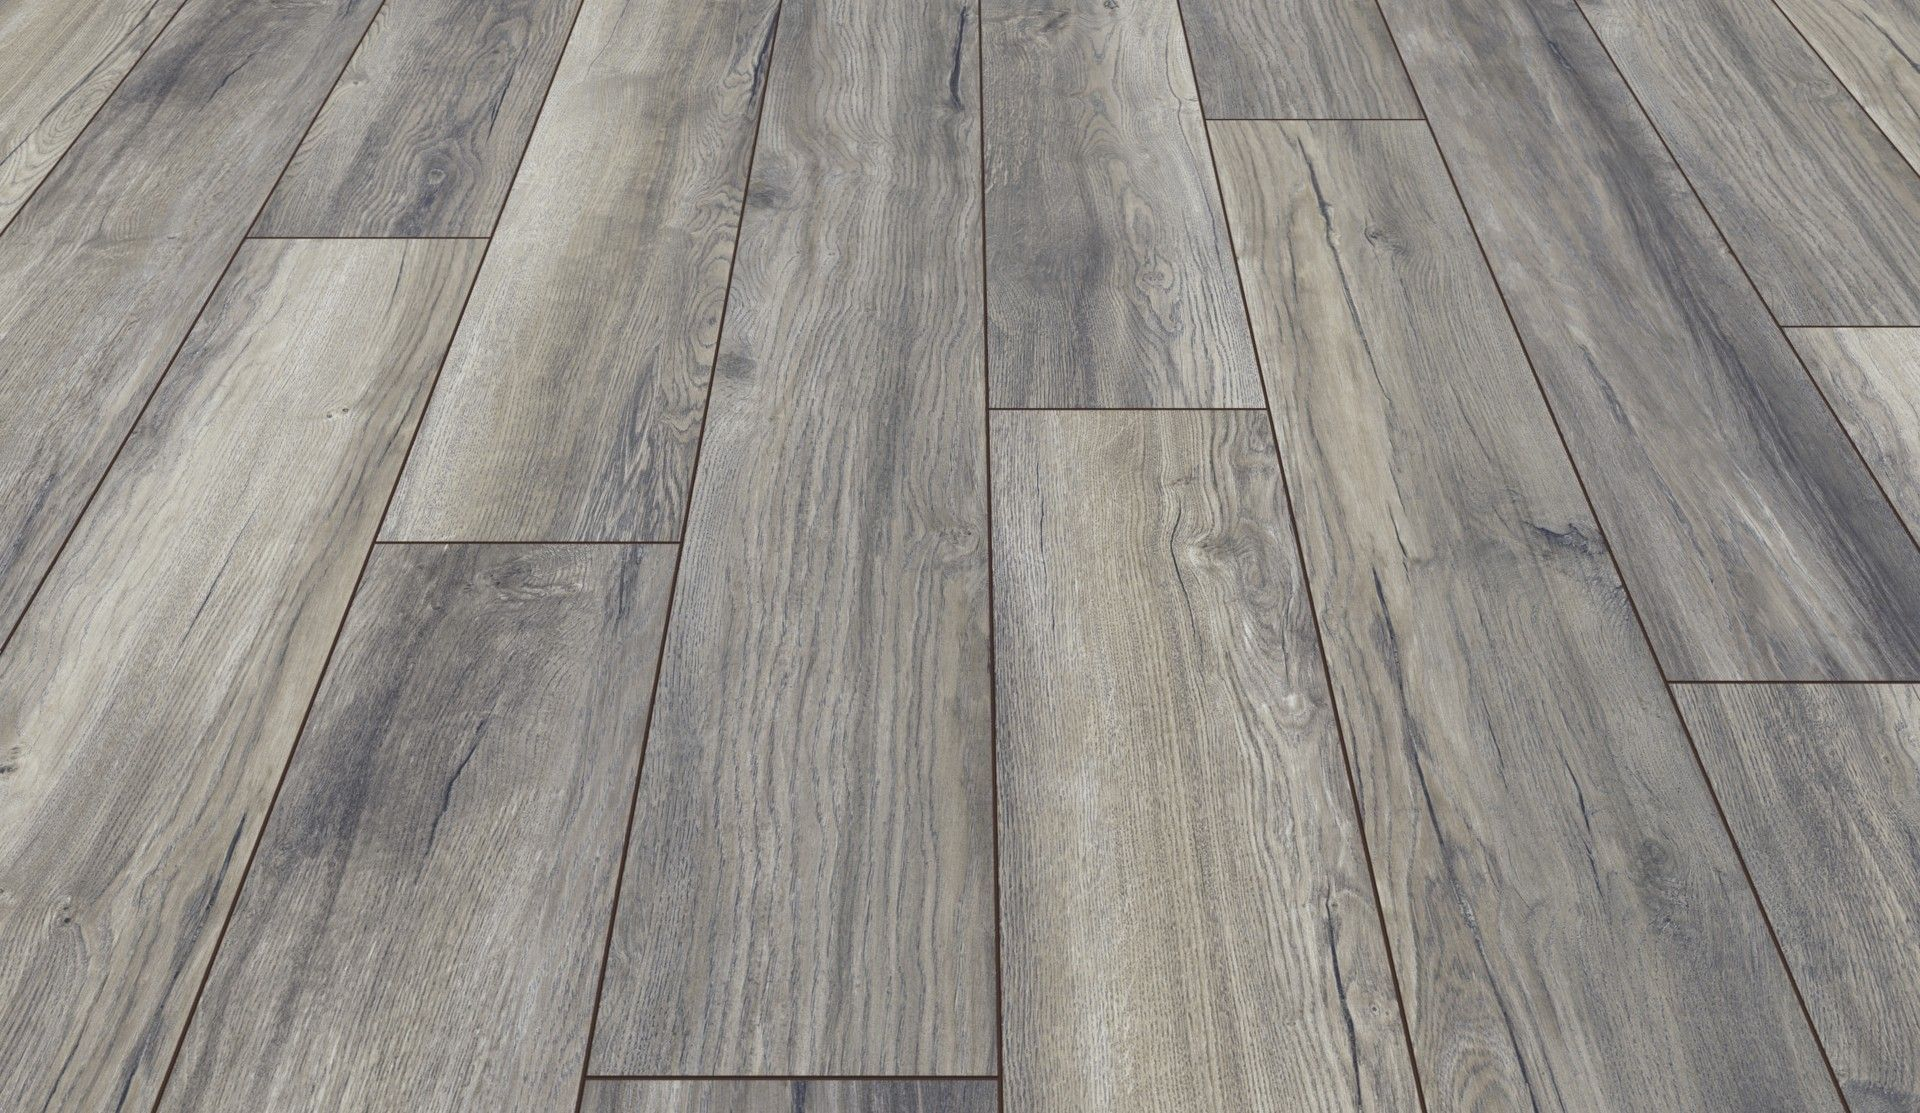 Swiss Krono Villa 4v 12mm Harbour Oak Grey M1204 Ac5 Laminate Flooring Swiss Krono Villa 4v 12mm Ac5 By Range L Flooring Grey Flooring Grey Wood Floors